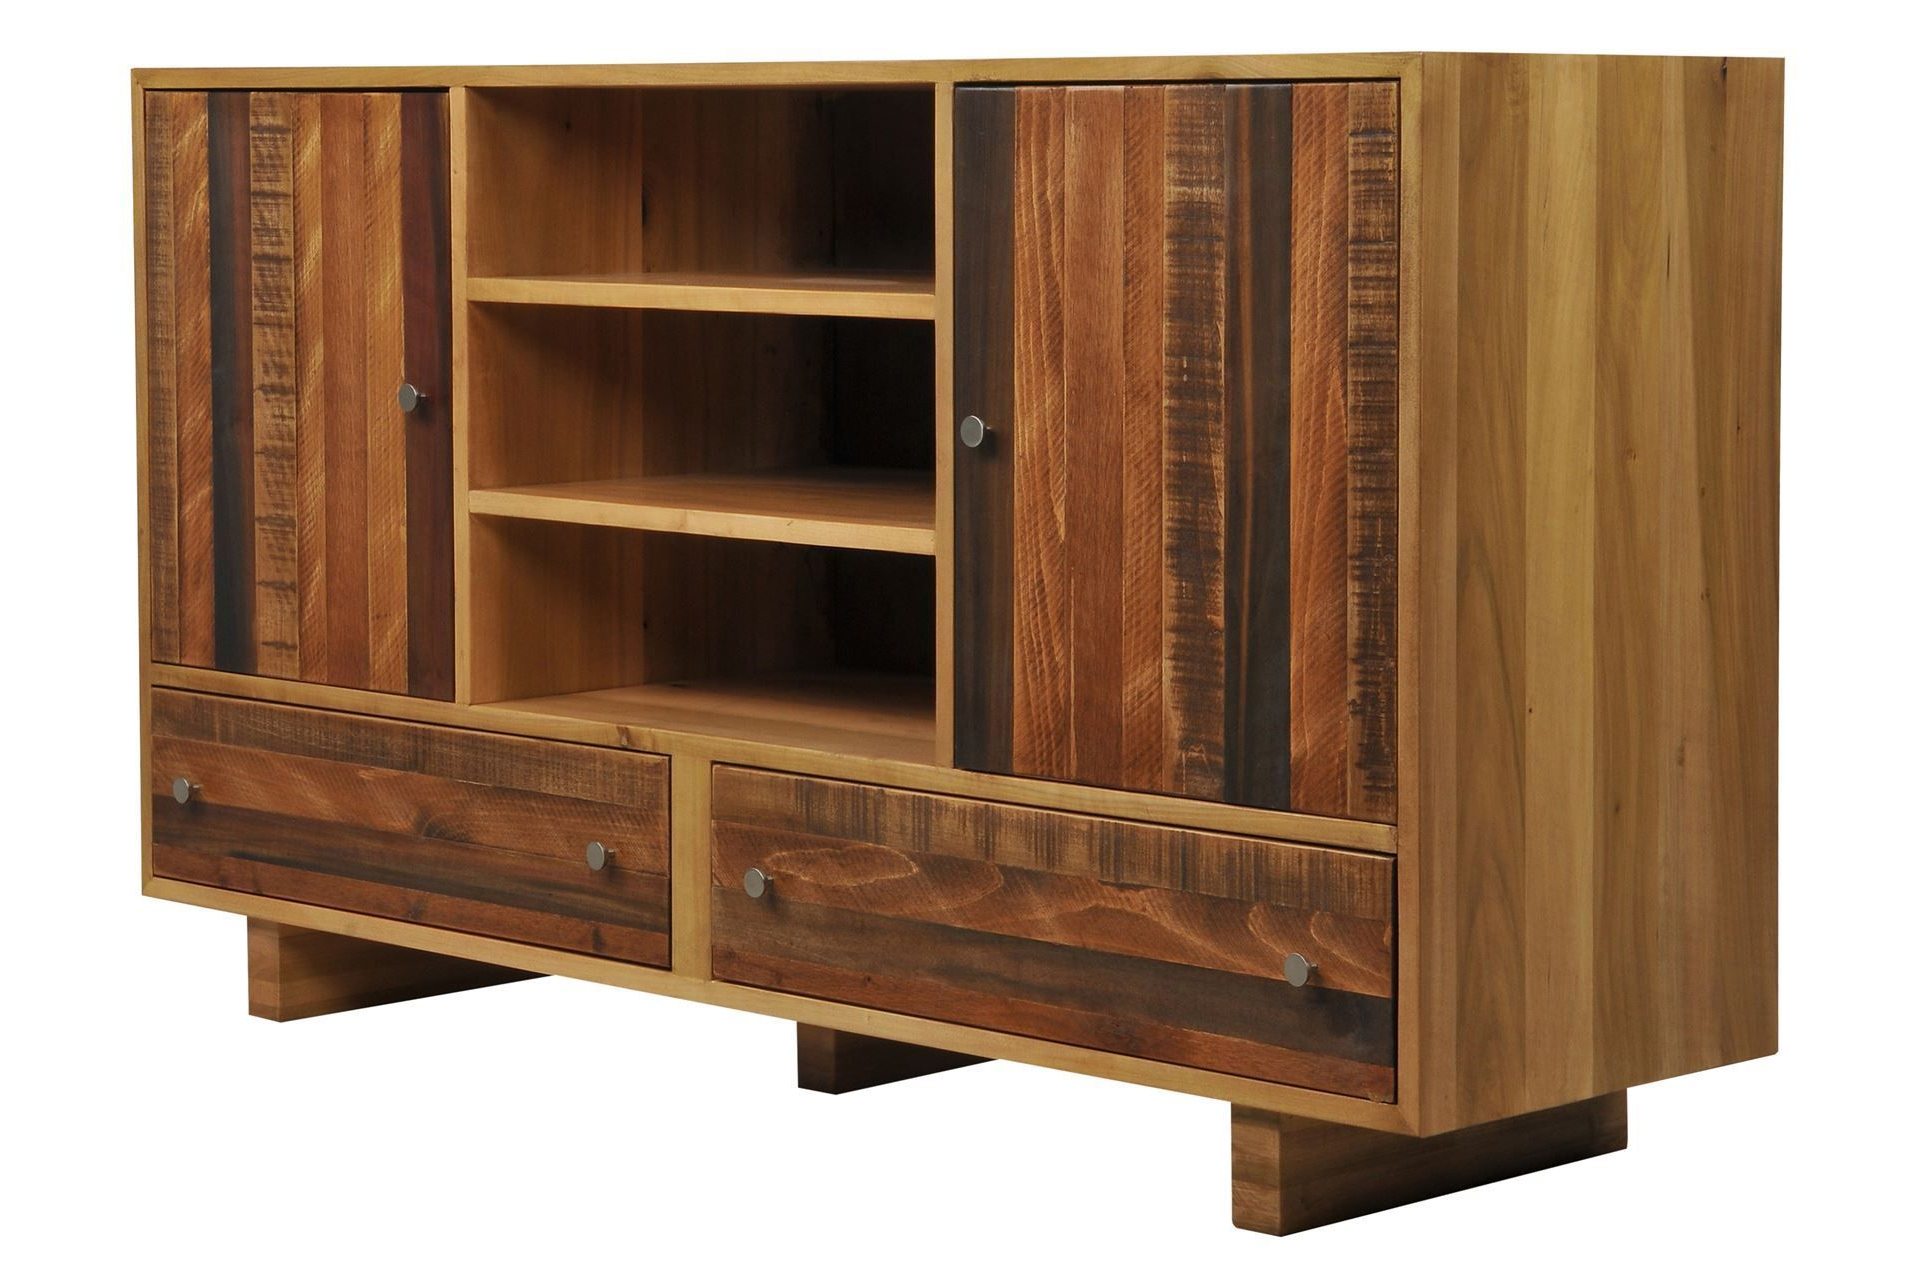 Everett 64 Inch Tv Console | Living Spaces | Pinterest | Consoles With Sinclair White 68 Inch Tv Stands (View 4 of 20)